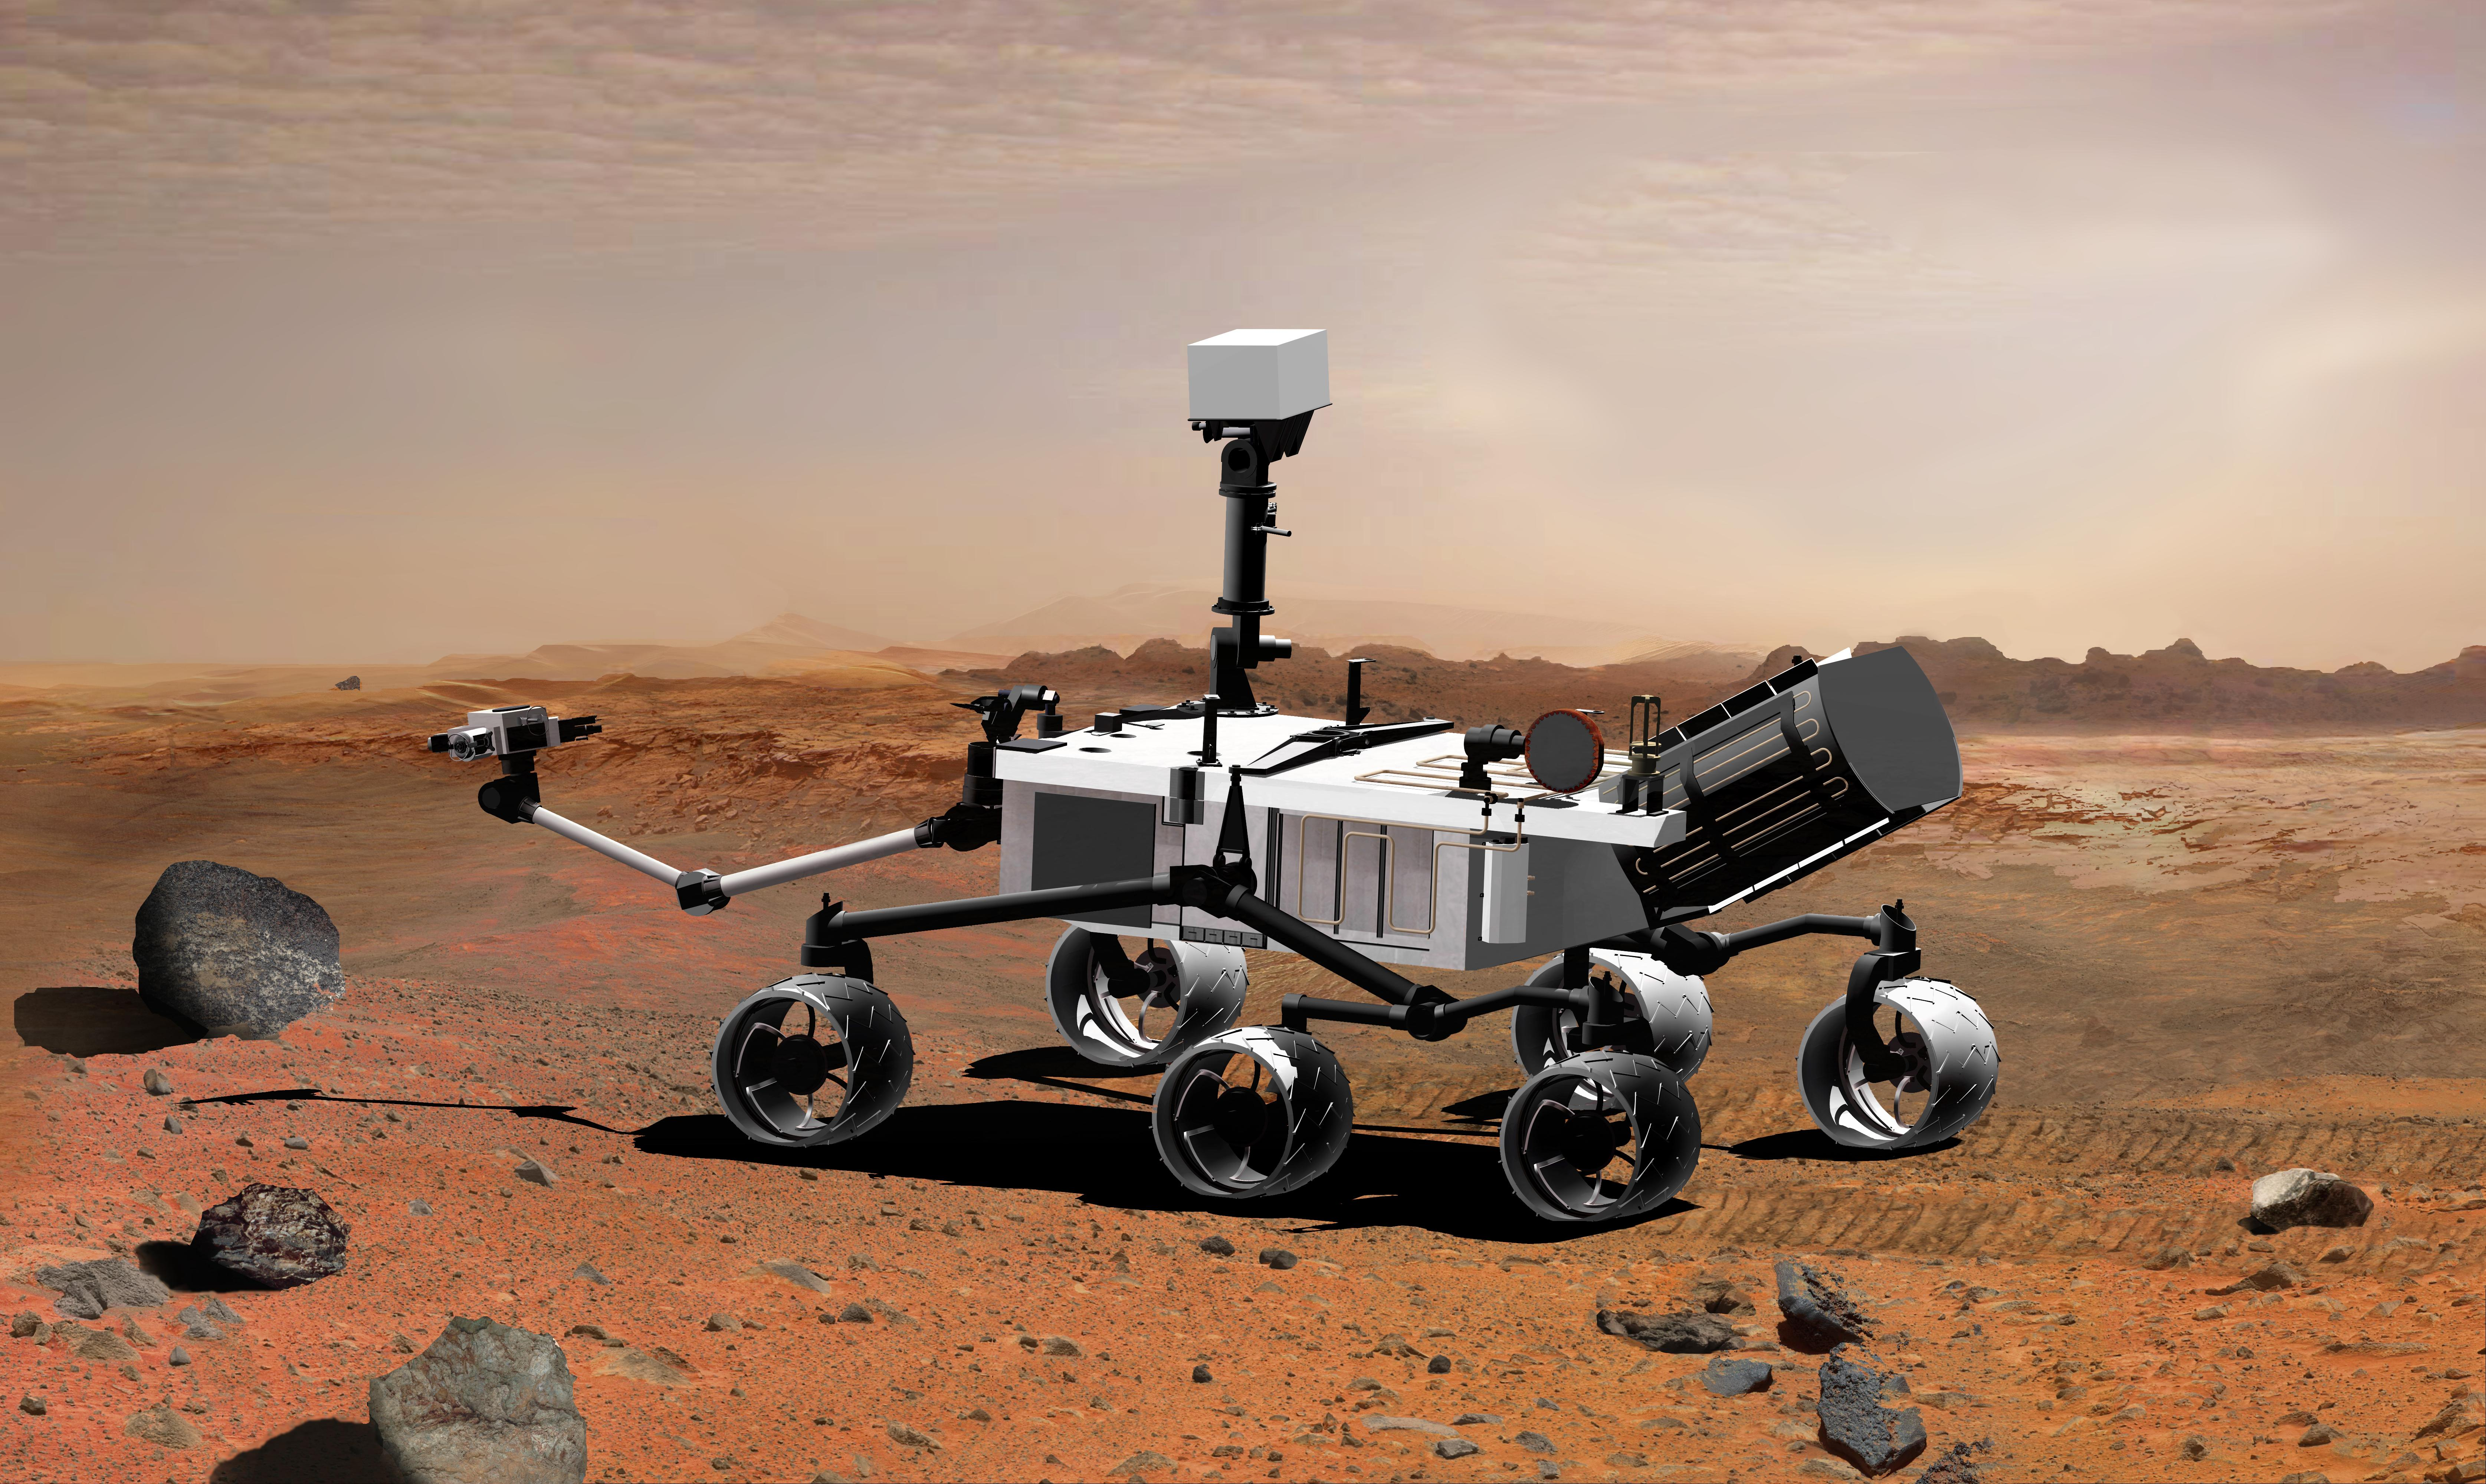 nasa curiosity rover pictures - HD1900×1318